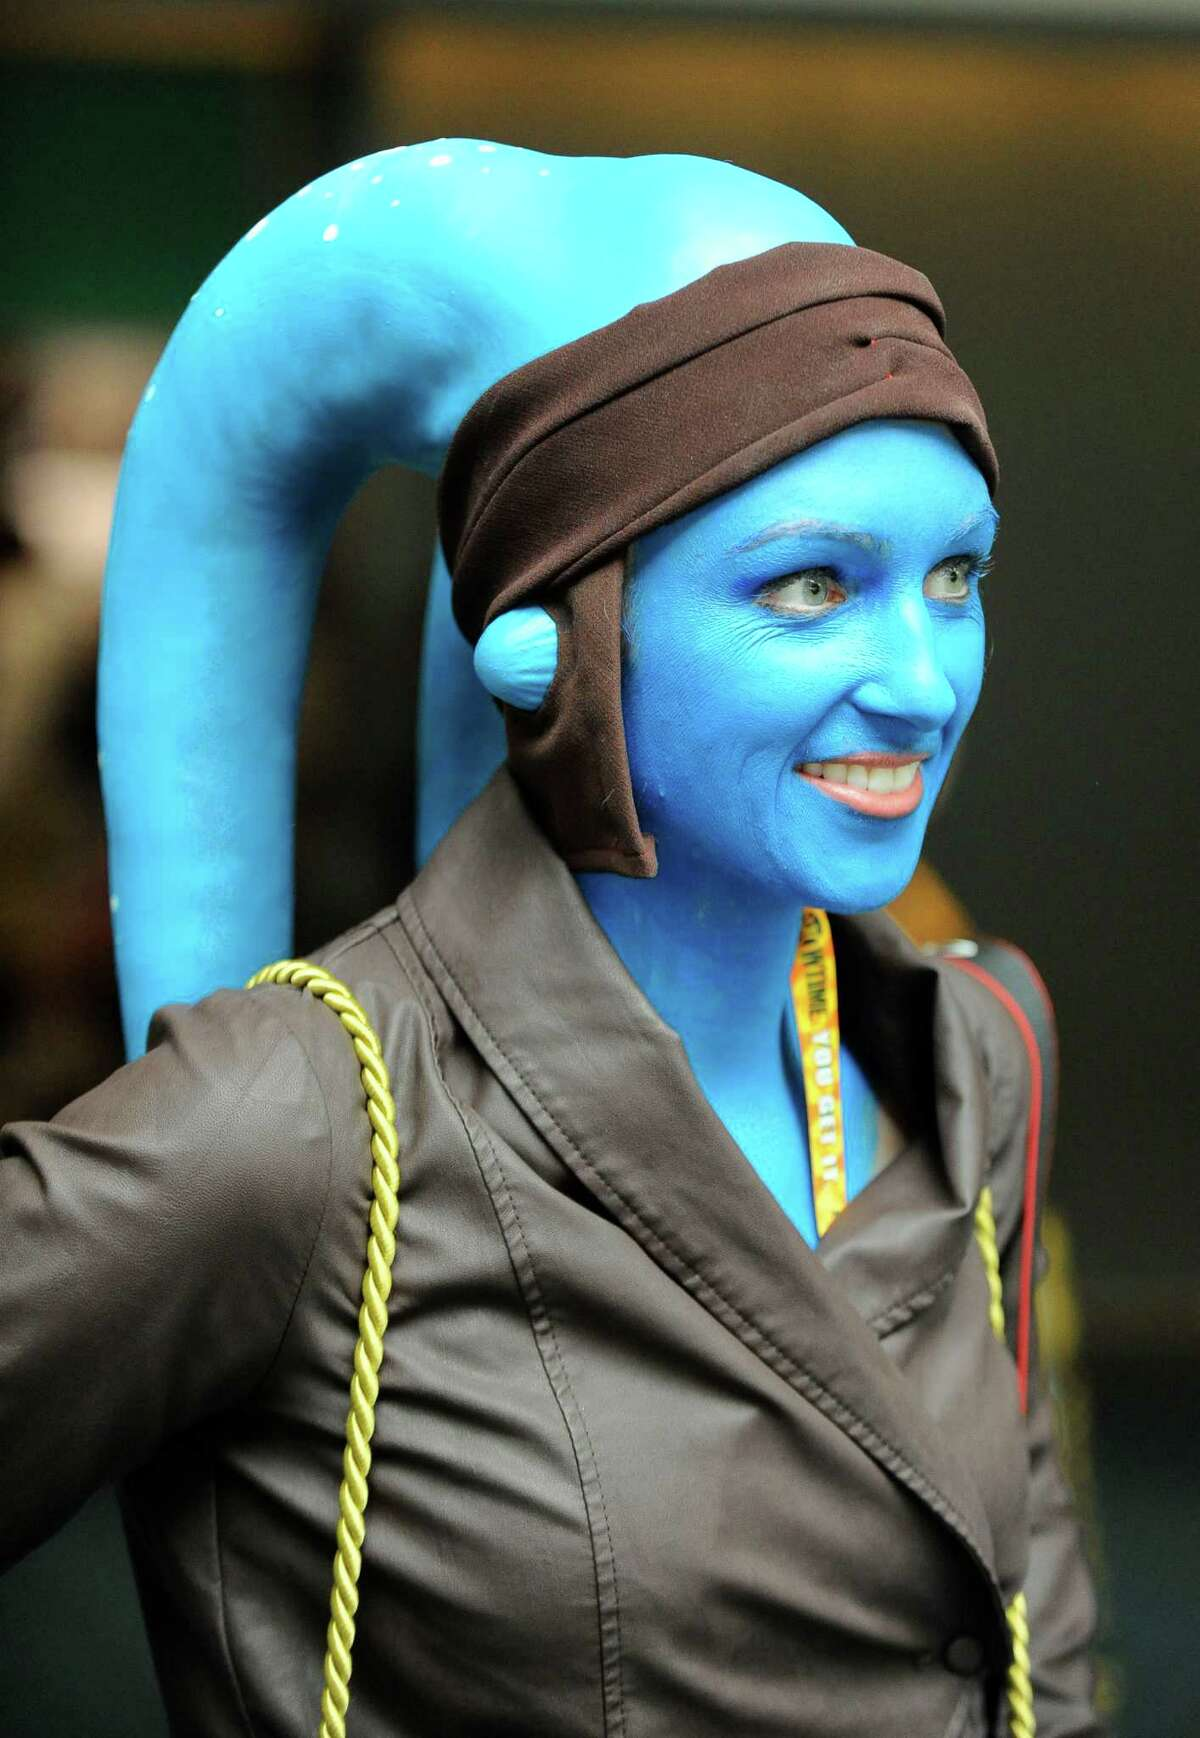 Meghan Spencer, dressed as a Twi'lek from Star Wars movies, walks into the exhibit hall on first day of Comic-Con convention held at the San Diego Convention Center on Thursday July 12, 2012, in San Diego.